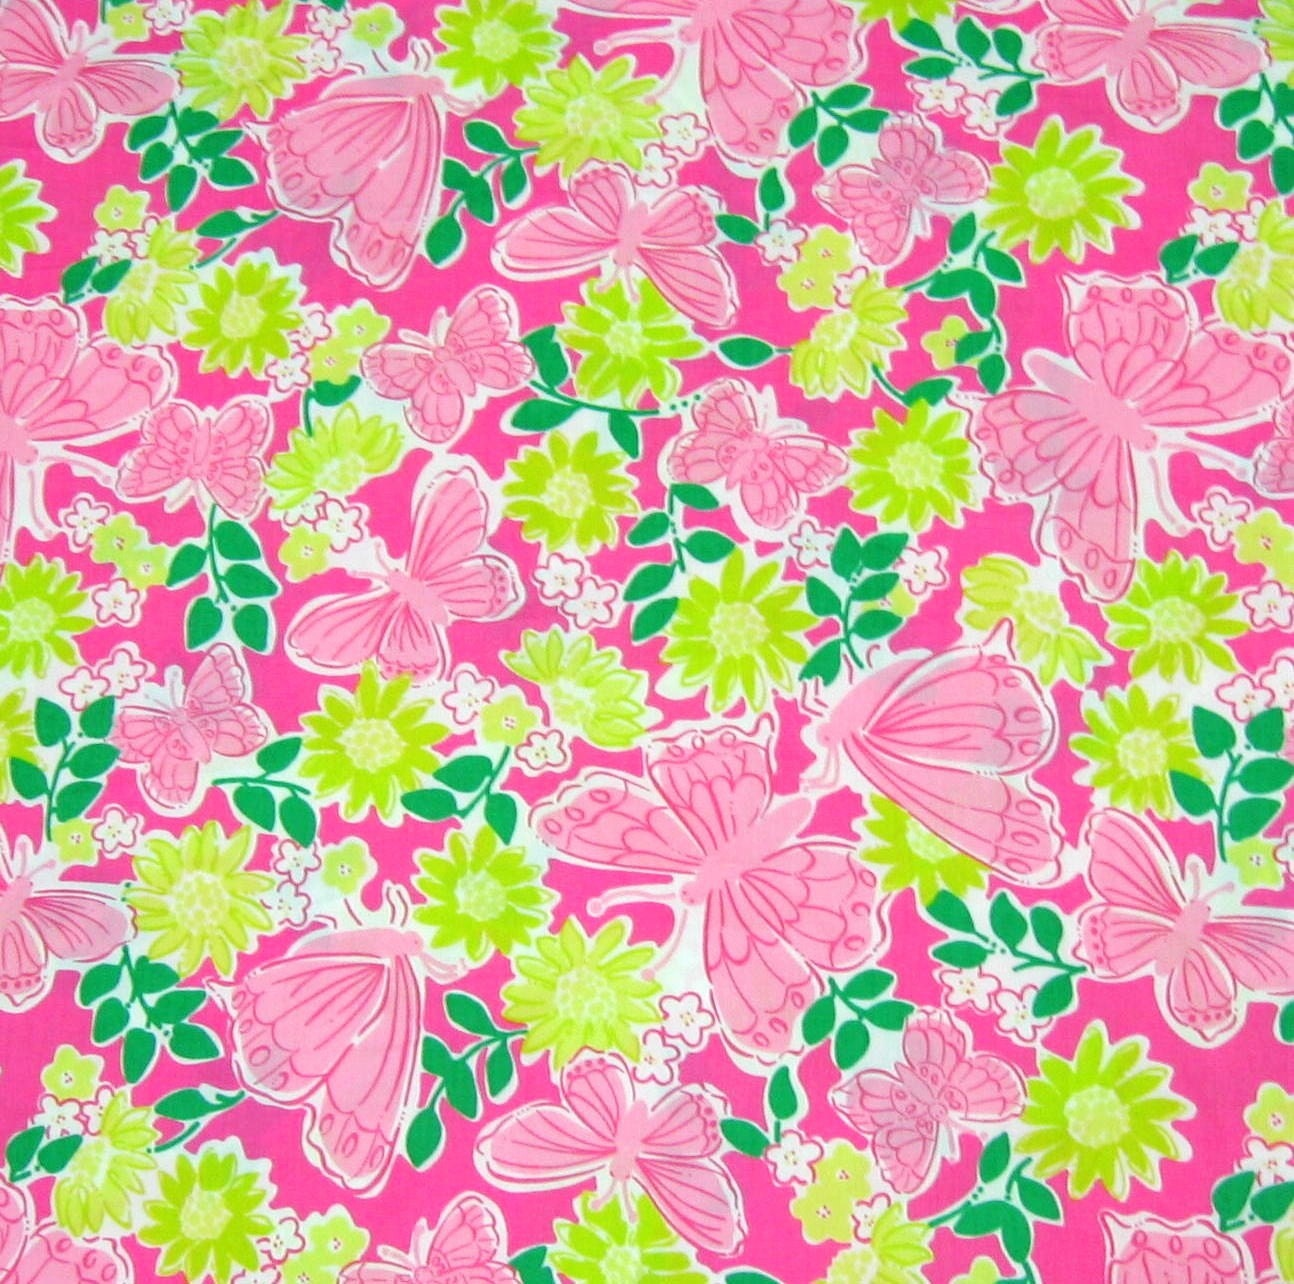 Lilly Pulitzer Fabric Authentic New Lilly Pulitzer Fabric Pink Hidden Garden 18 X 18